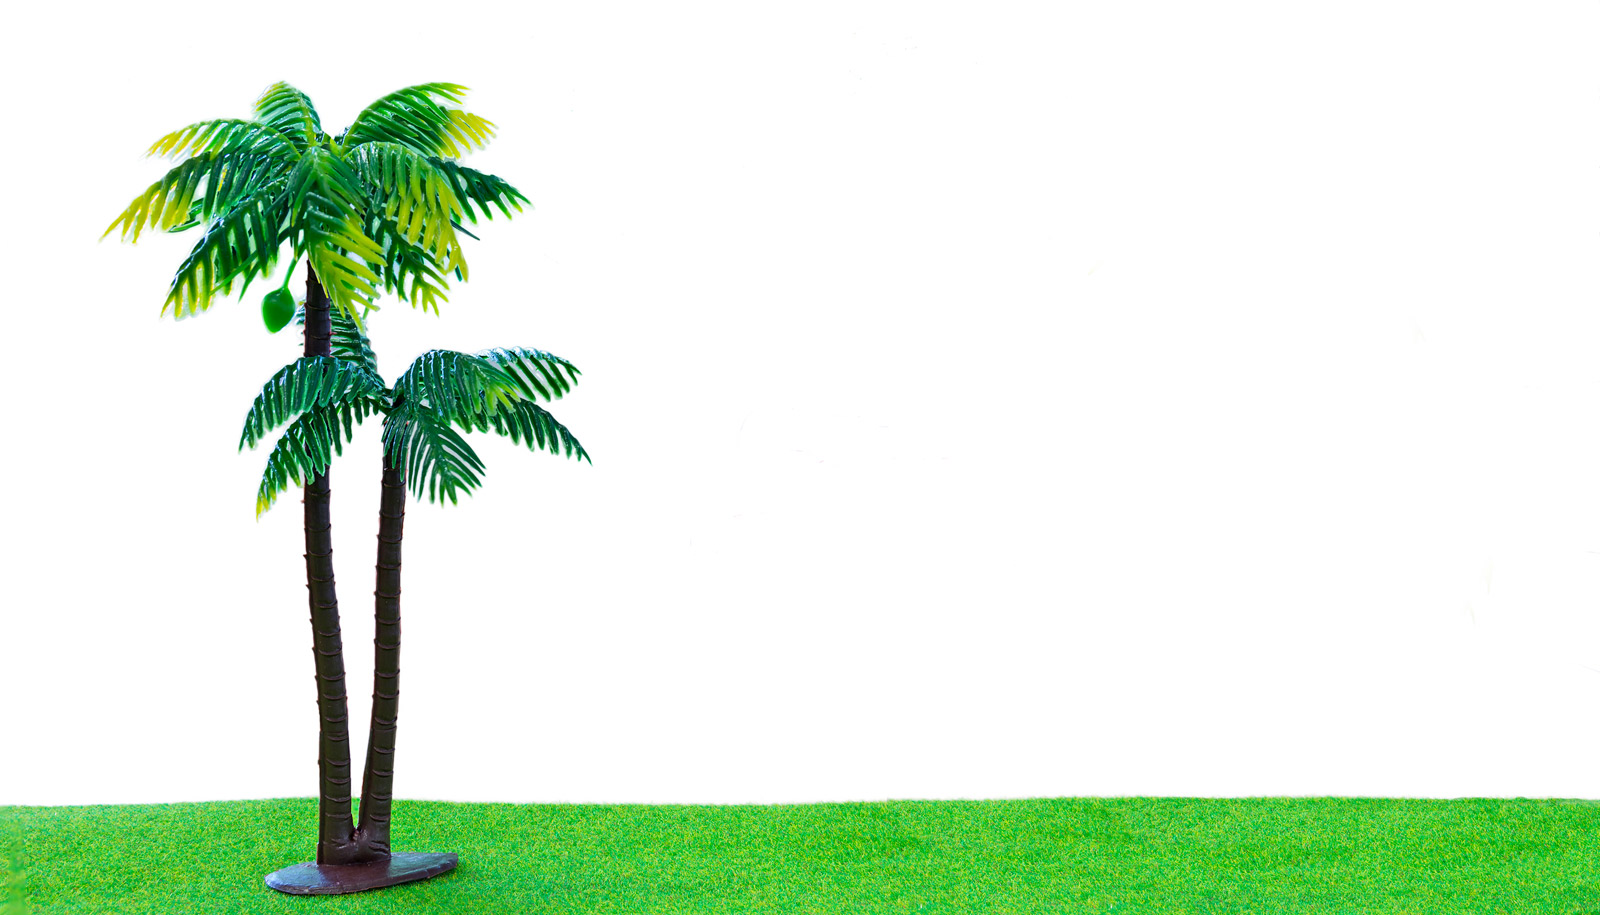 flappy leaves on fake tree make electricity futurity